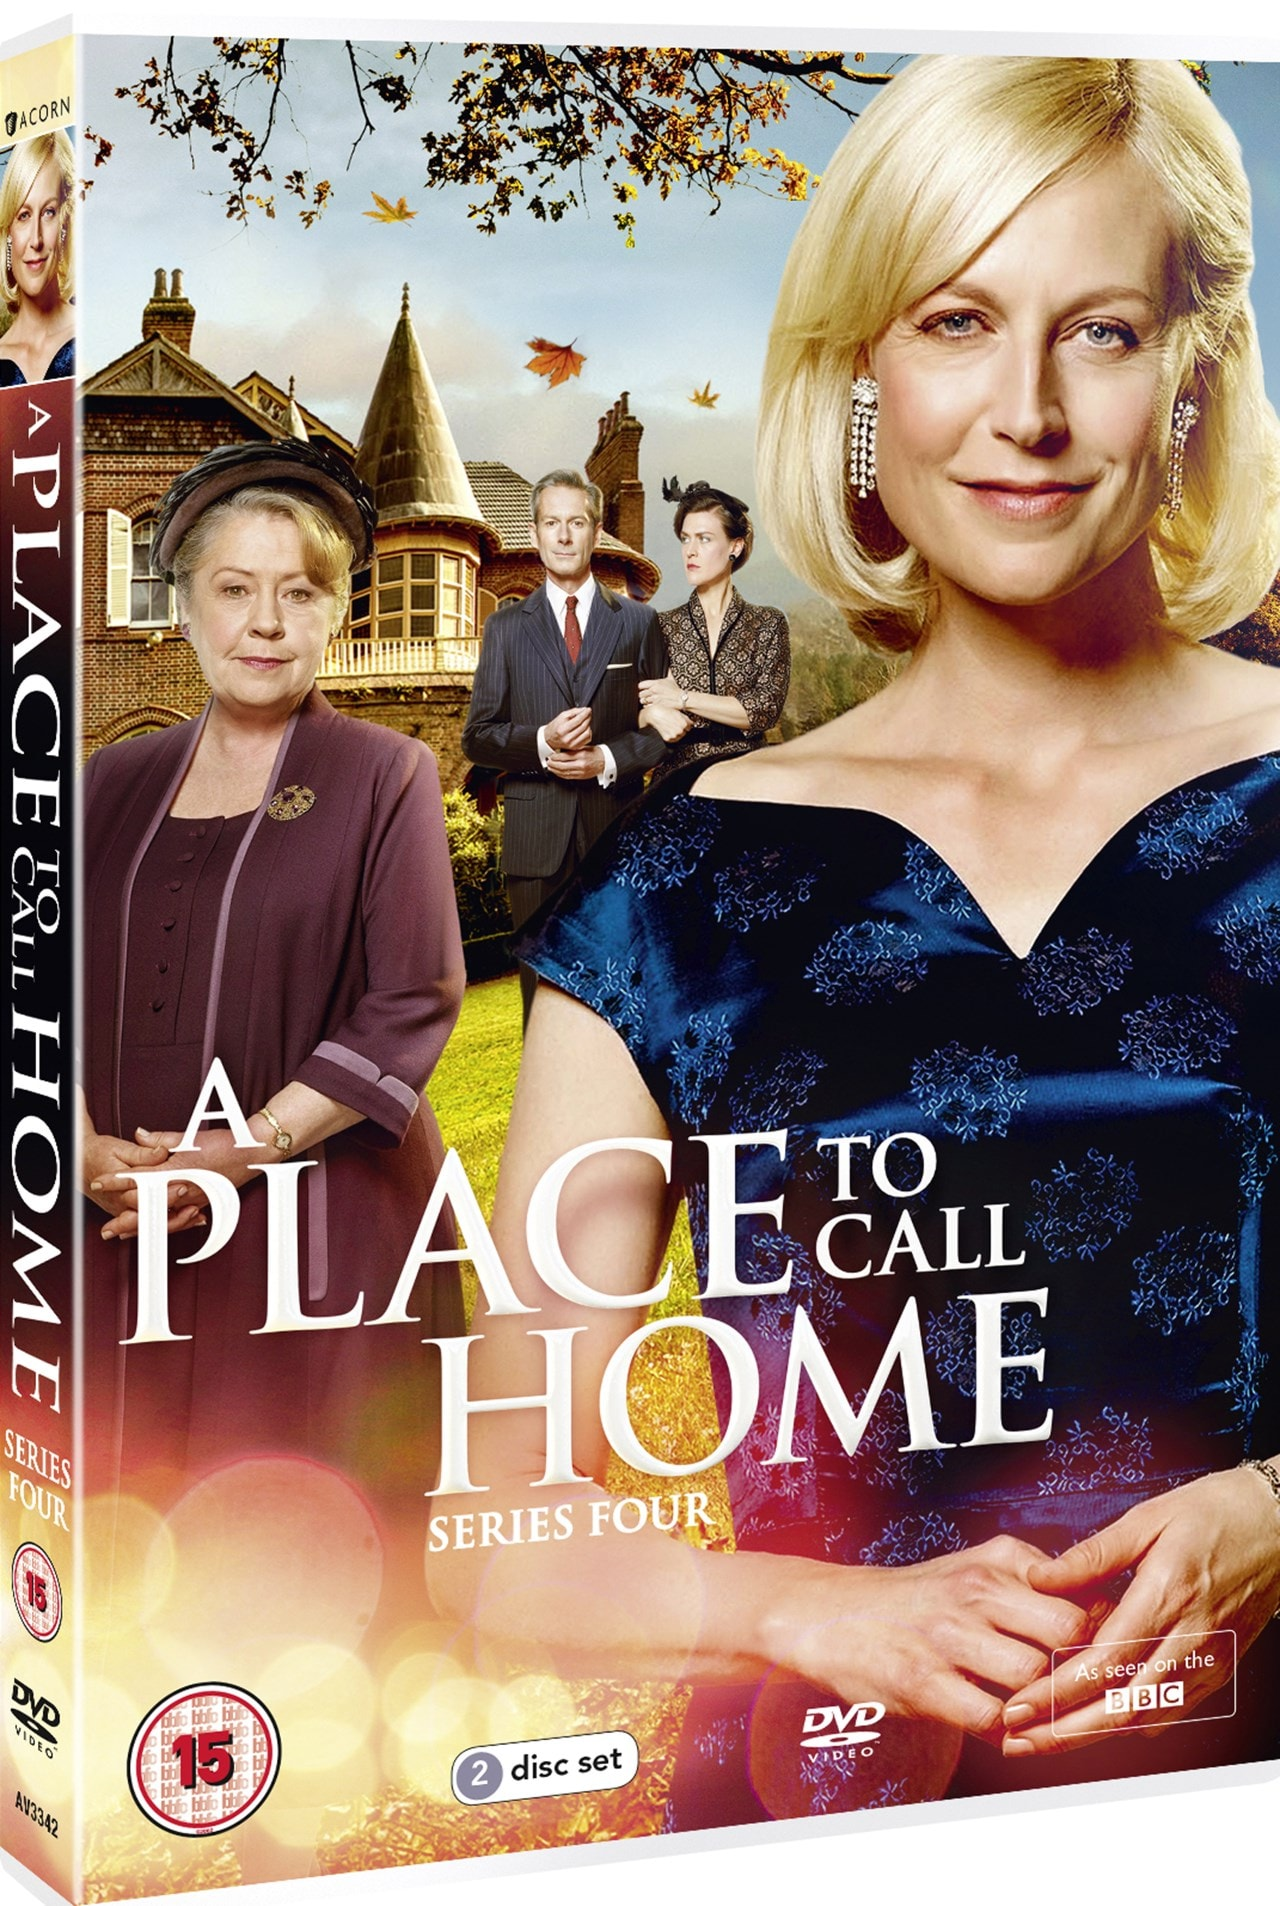 A Place to Call Home: Series Four - 2